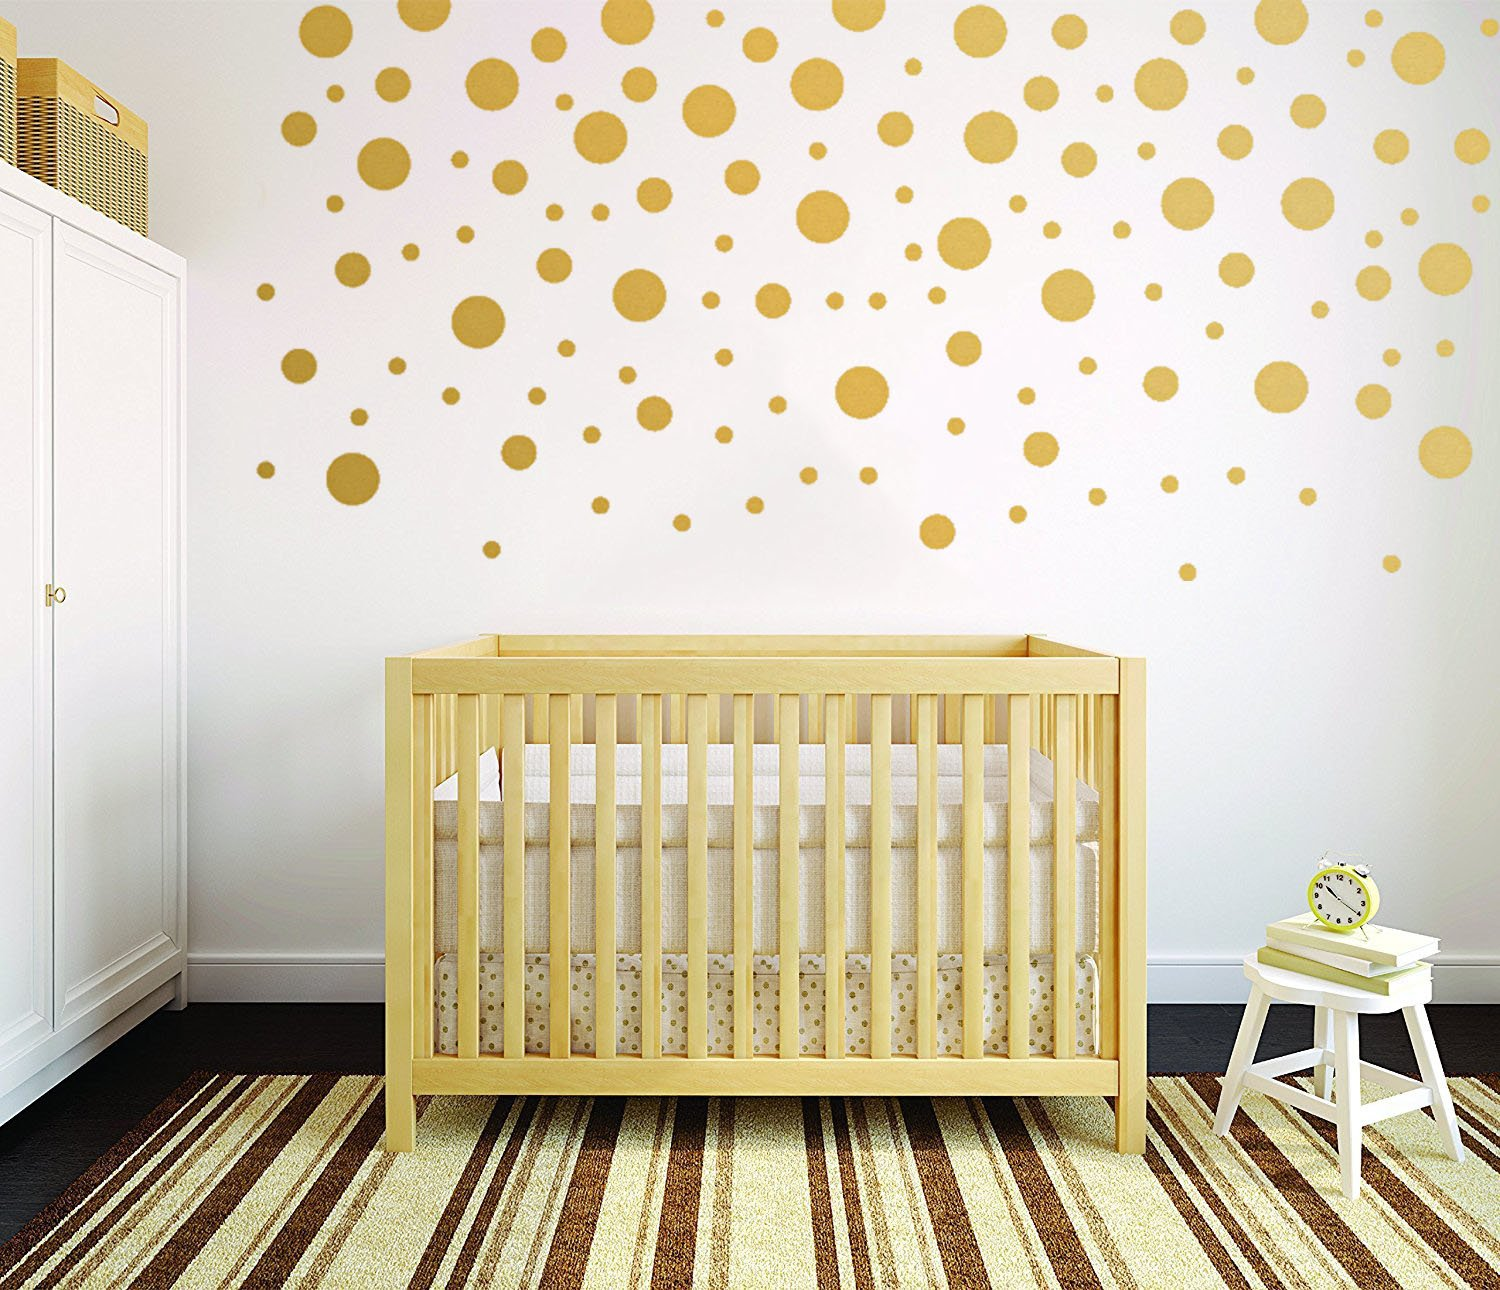 Amazoncom Gold Wall Decal Dots(120Pcs) Vinyl Removable Art Round Stickers